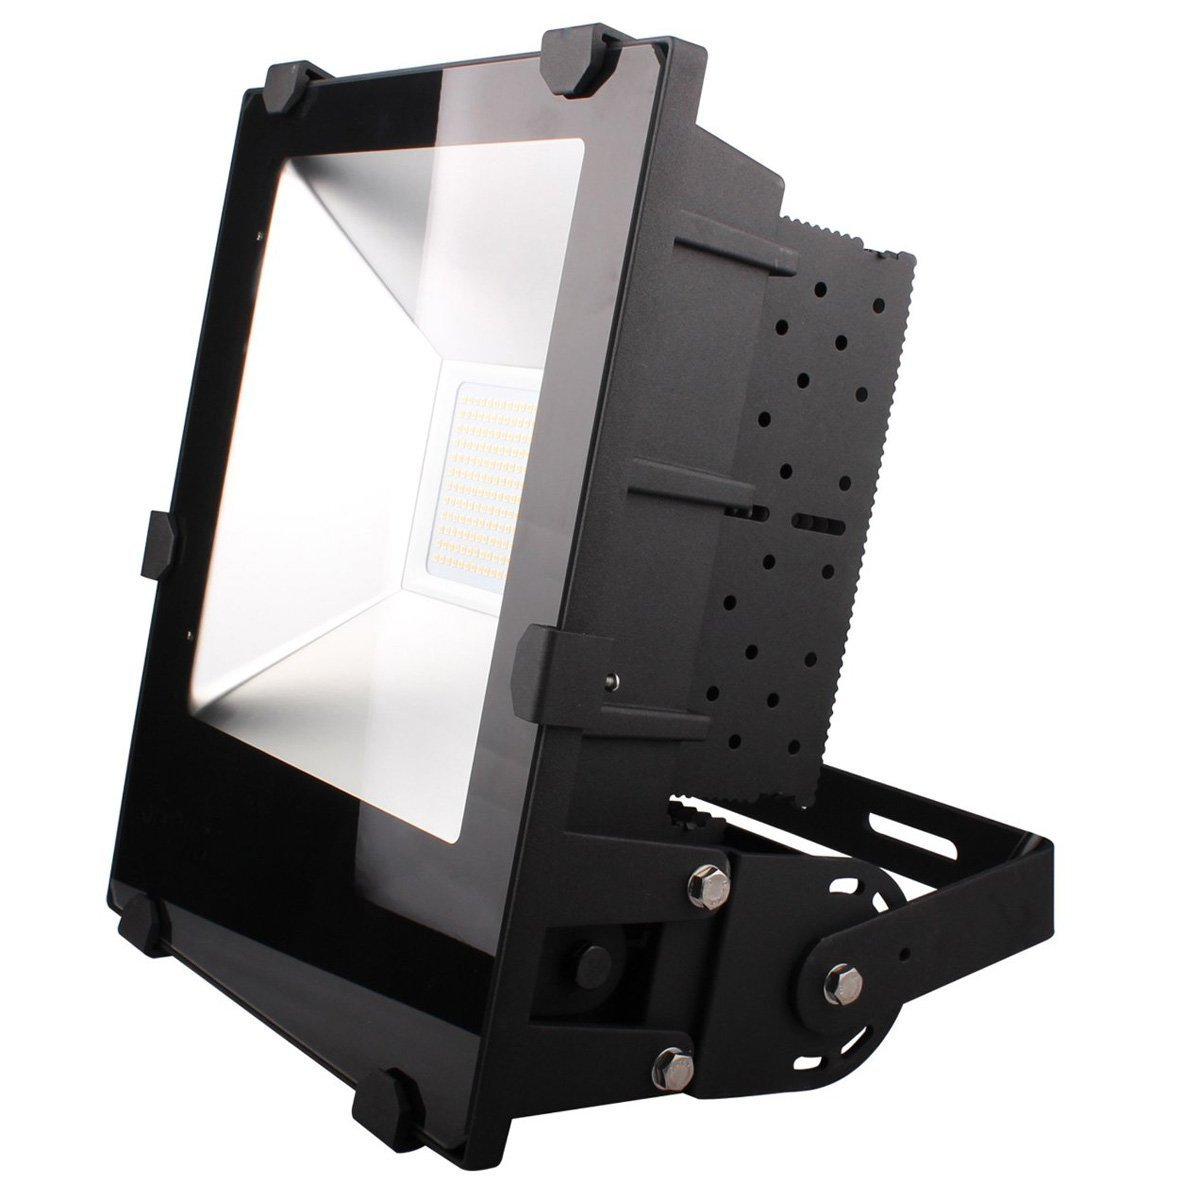 Outdoor 250W LED Flood Light- 500W--800W HPS or HID Equivalent- 25000lm-Cold White 5000K Floodlight - Meanwell Driver And Philips LED by ECOL